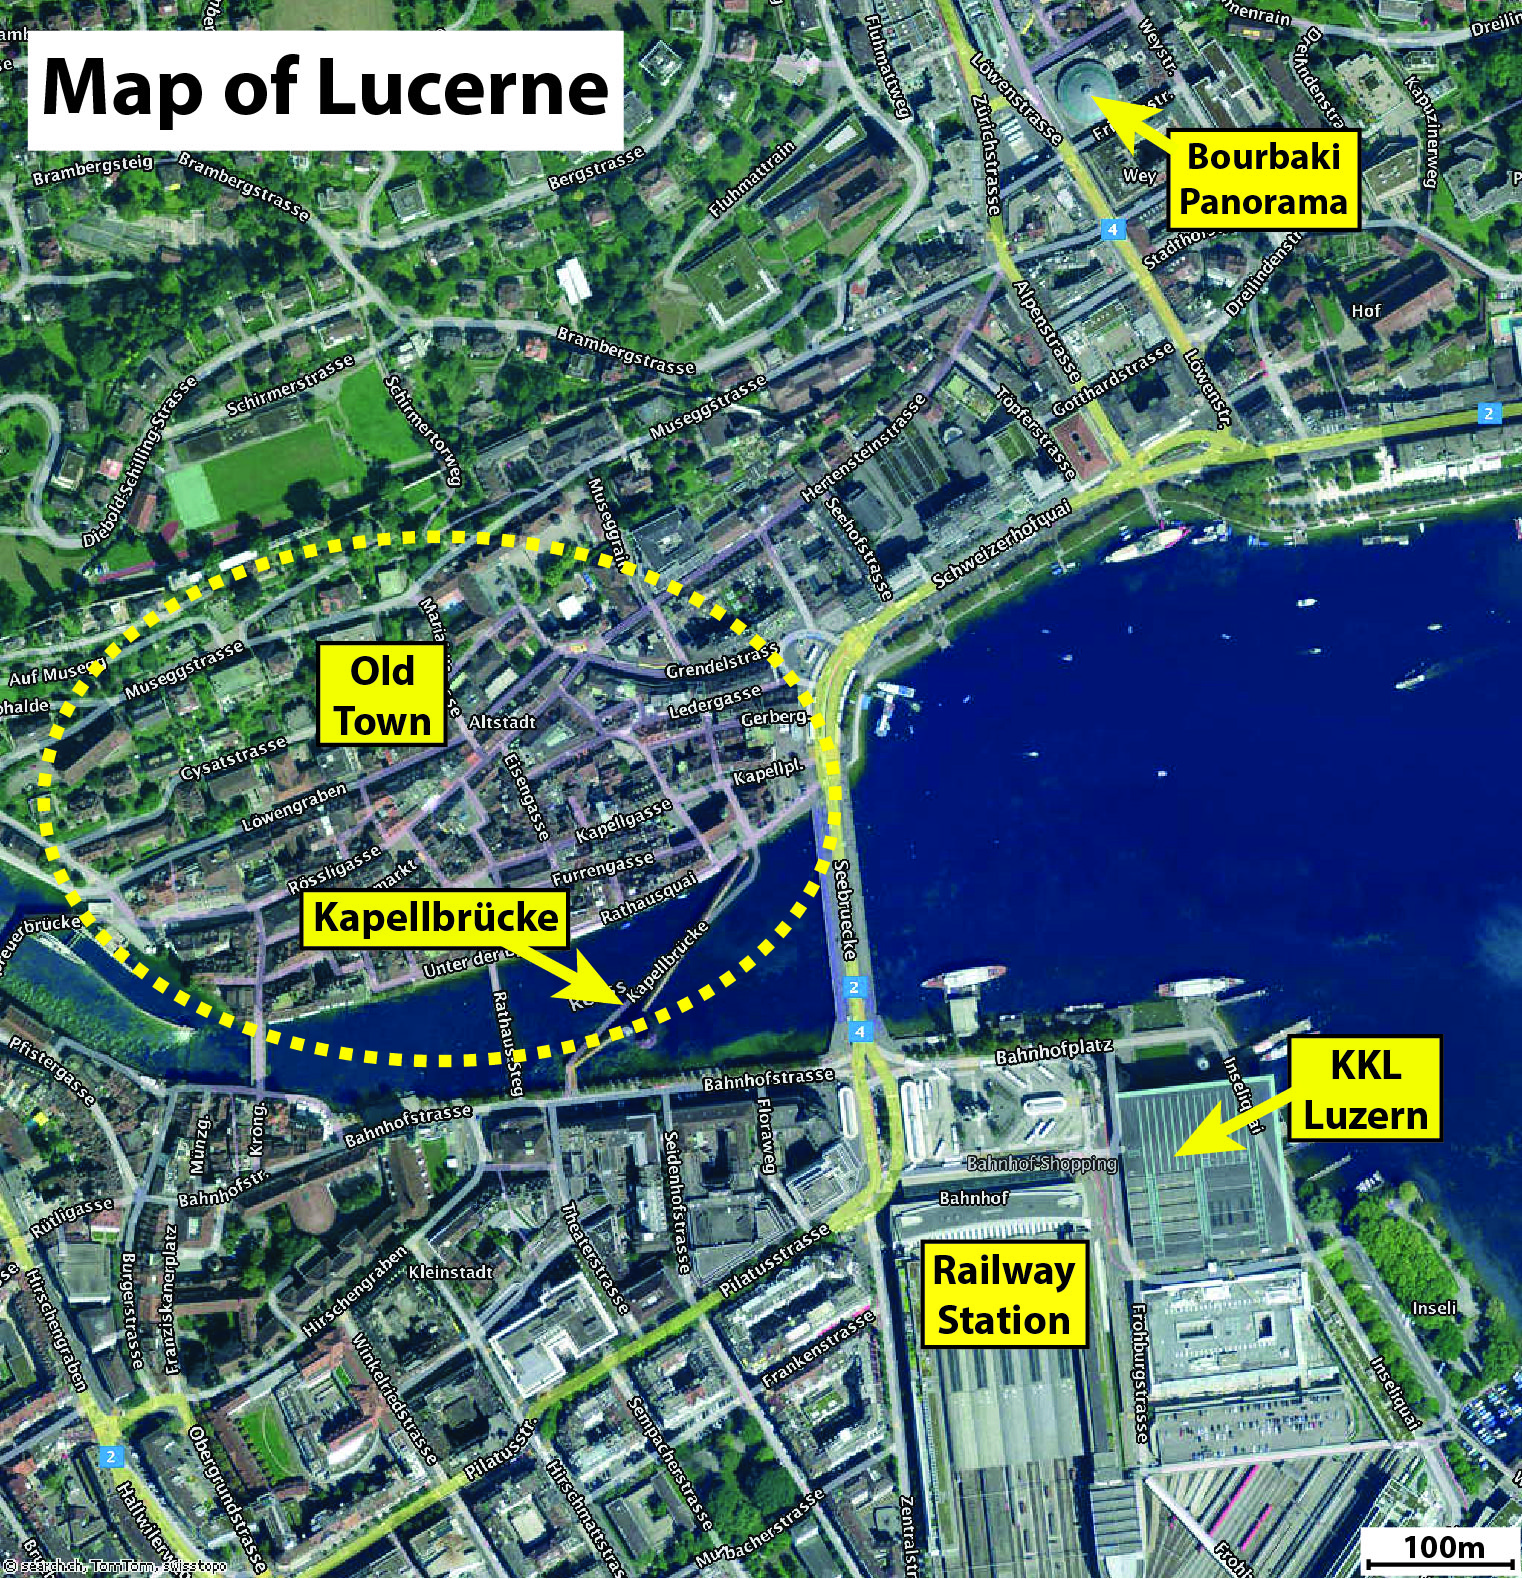 NOLTA2014 – Lucerne Tourist Map